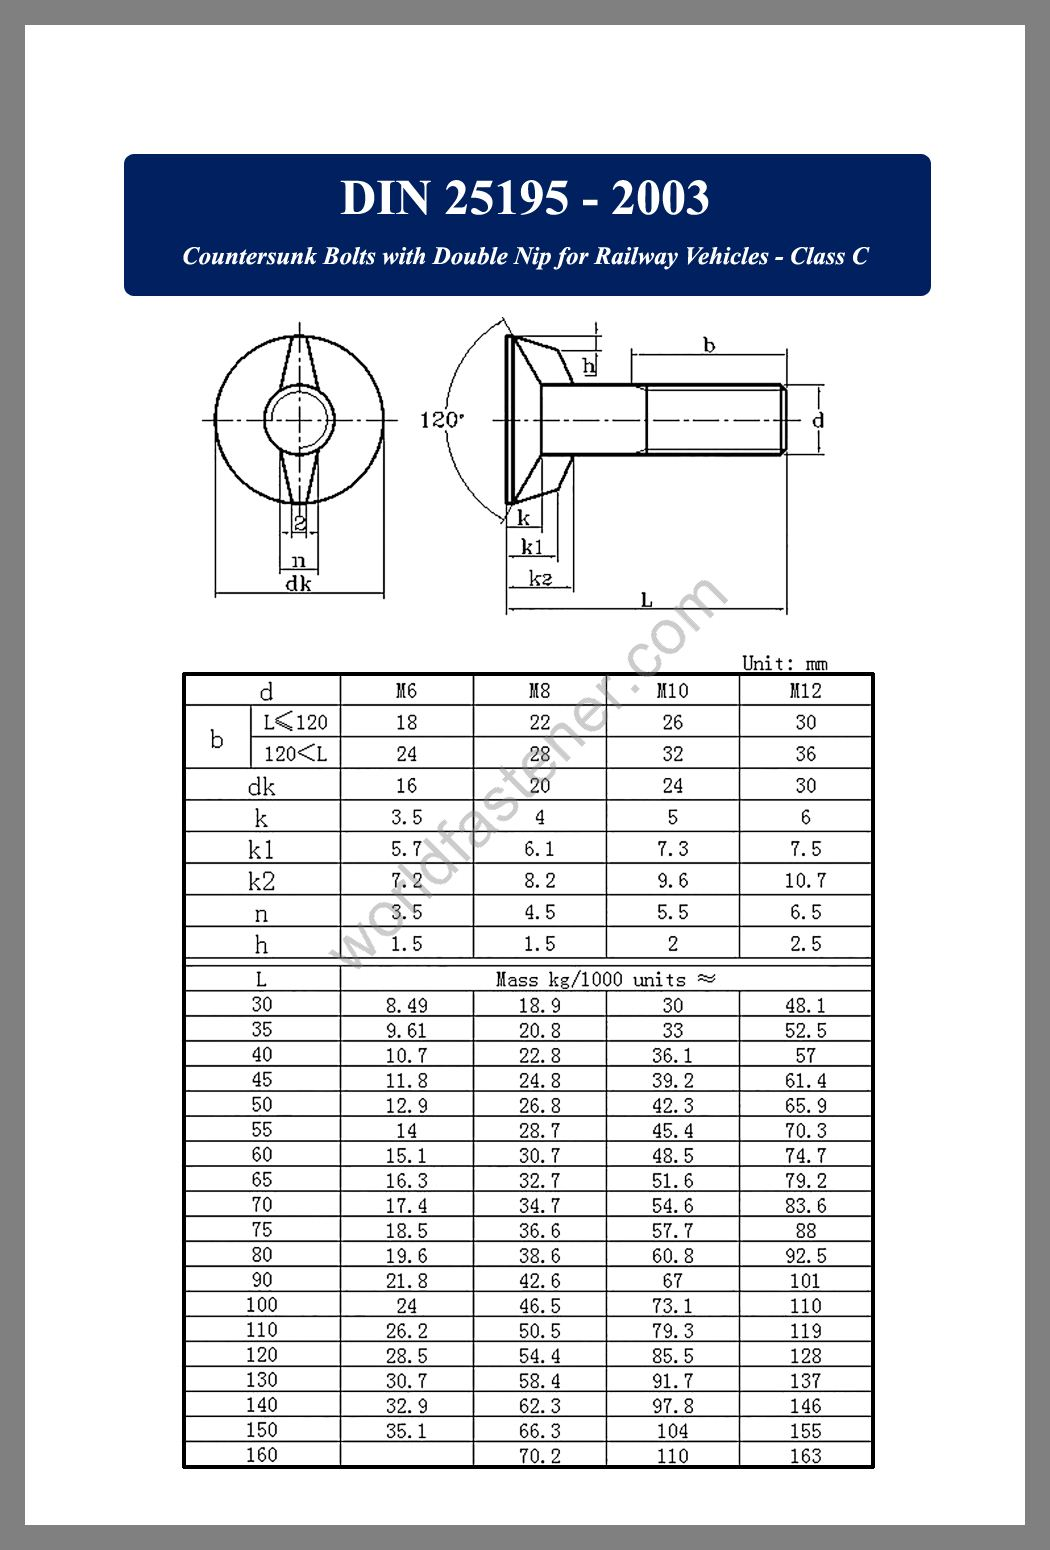 DIN 25195 Countersunk Bolts with Double Nip for Railway Vehicles-Class C, Countersunk Head Bolts, Countersunk Head Screws, fastener, screw, bolt, din standard bolts, din standard screws